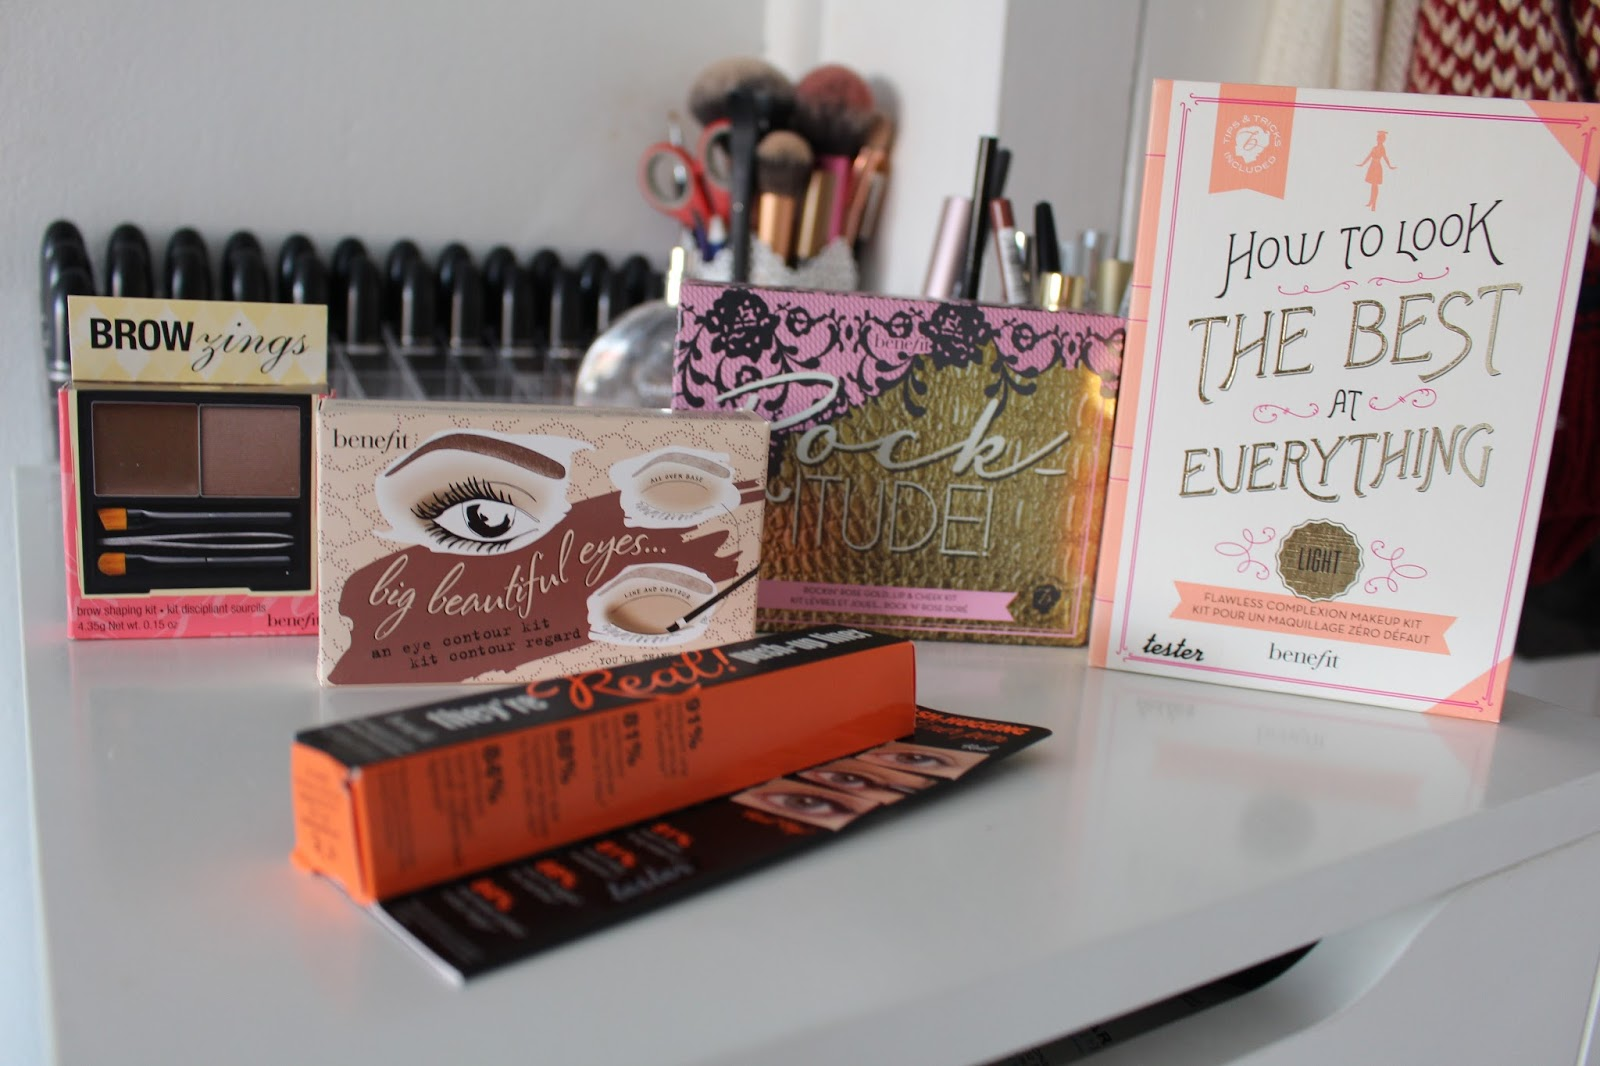 So as I'm sure you all know, I've recently posted about starting my new job at Benefit Cosmetics. When you first start you have to send off some basic ...